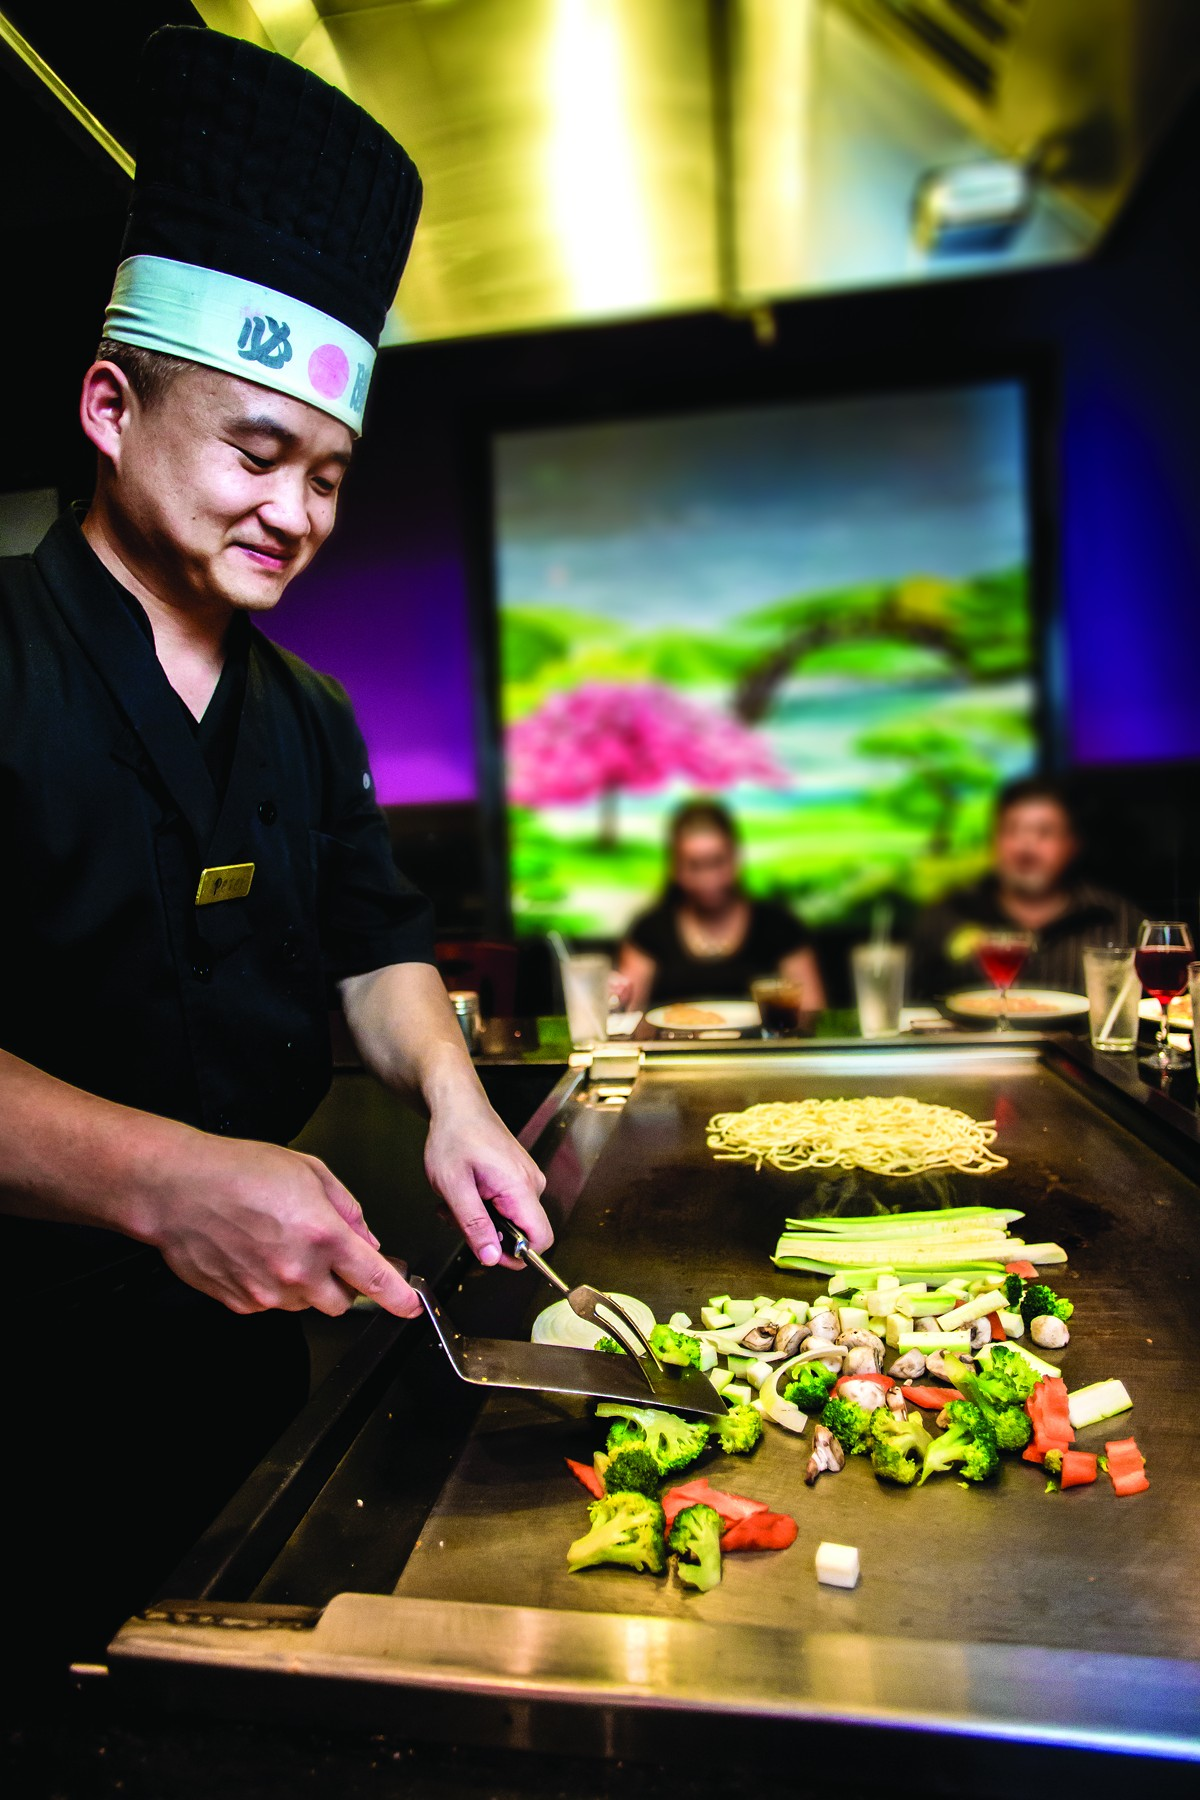 The cover of BITE 2015 features a photo from the teppanyaki grill at A-Aki Japanese Sushi and Steakhouse.